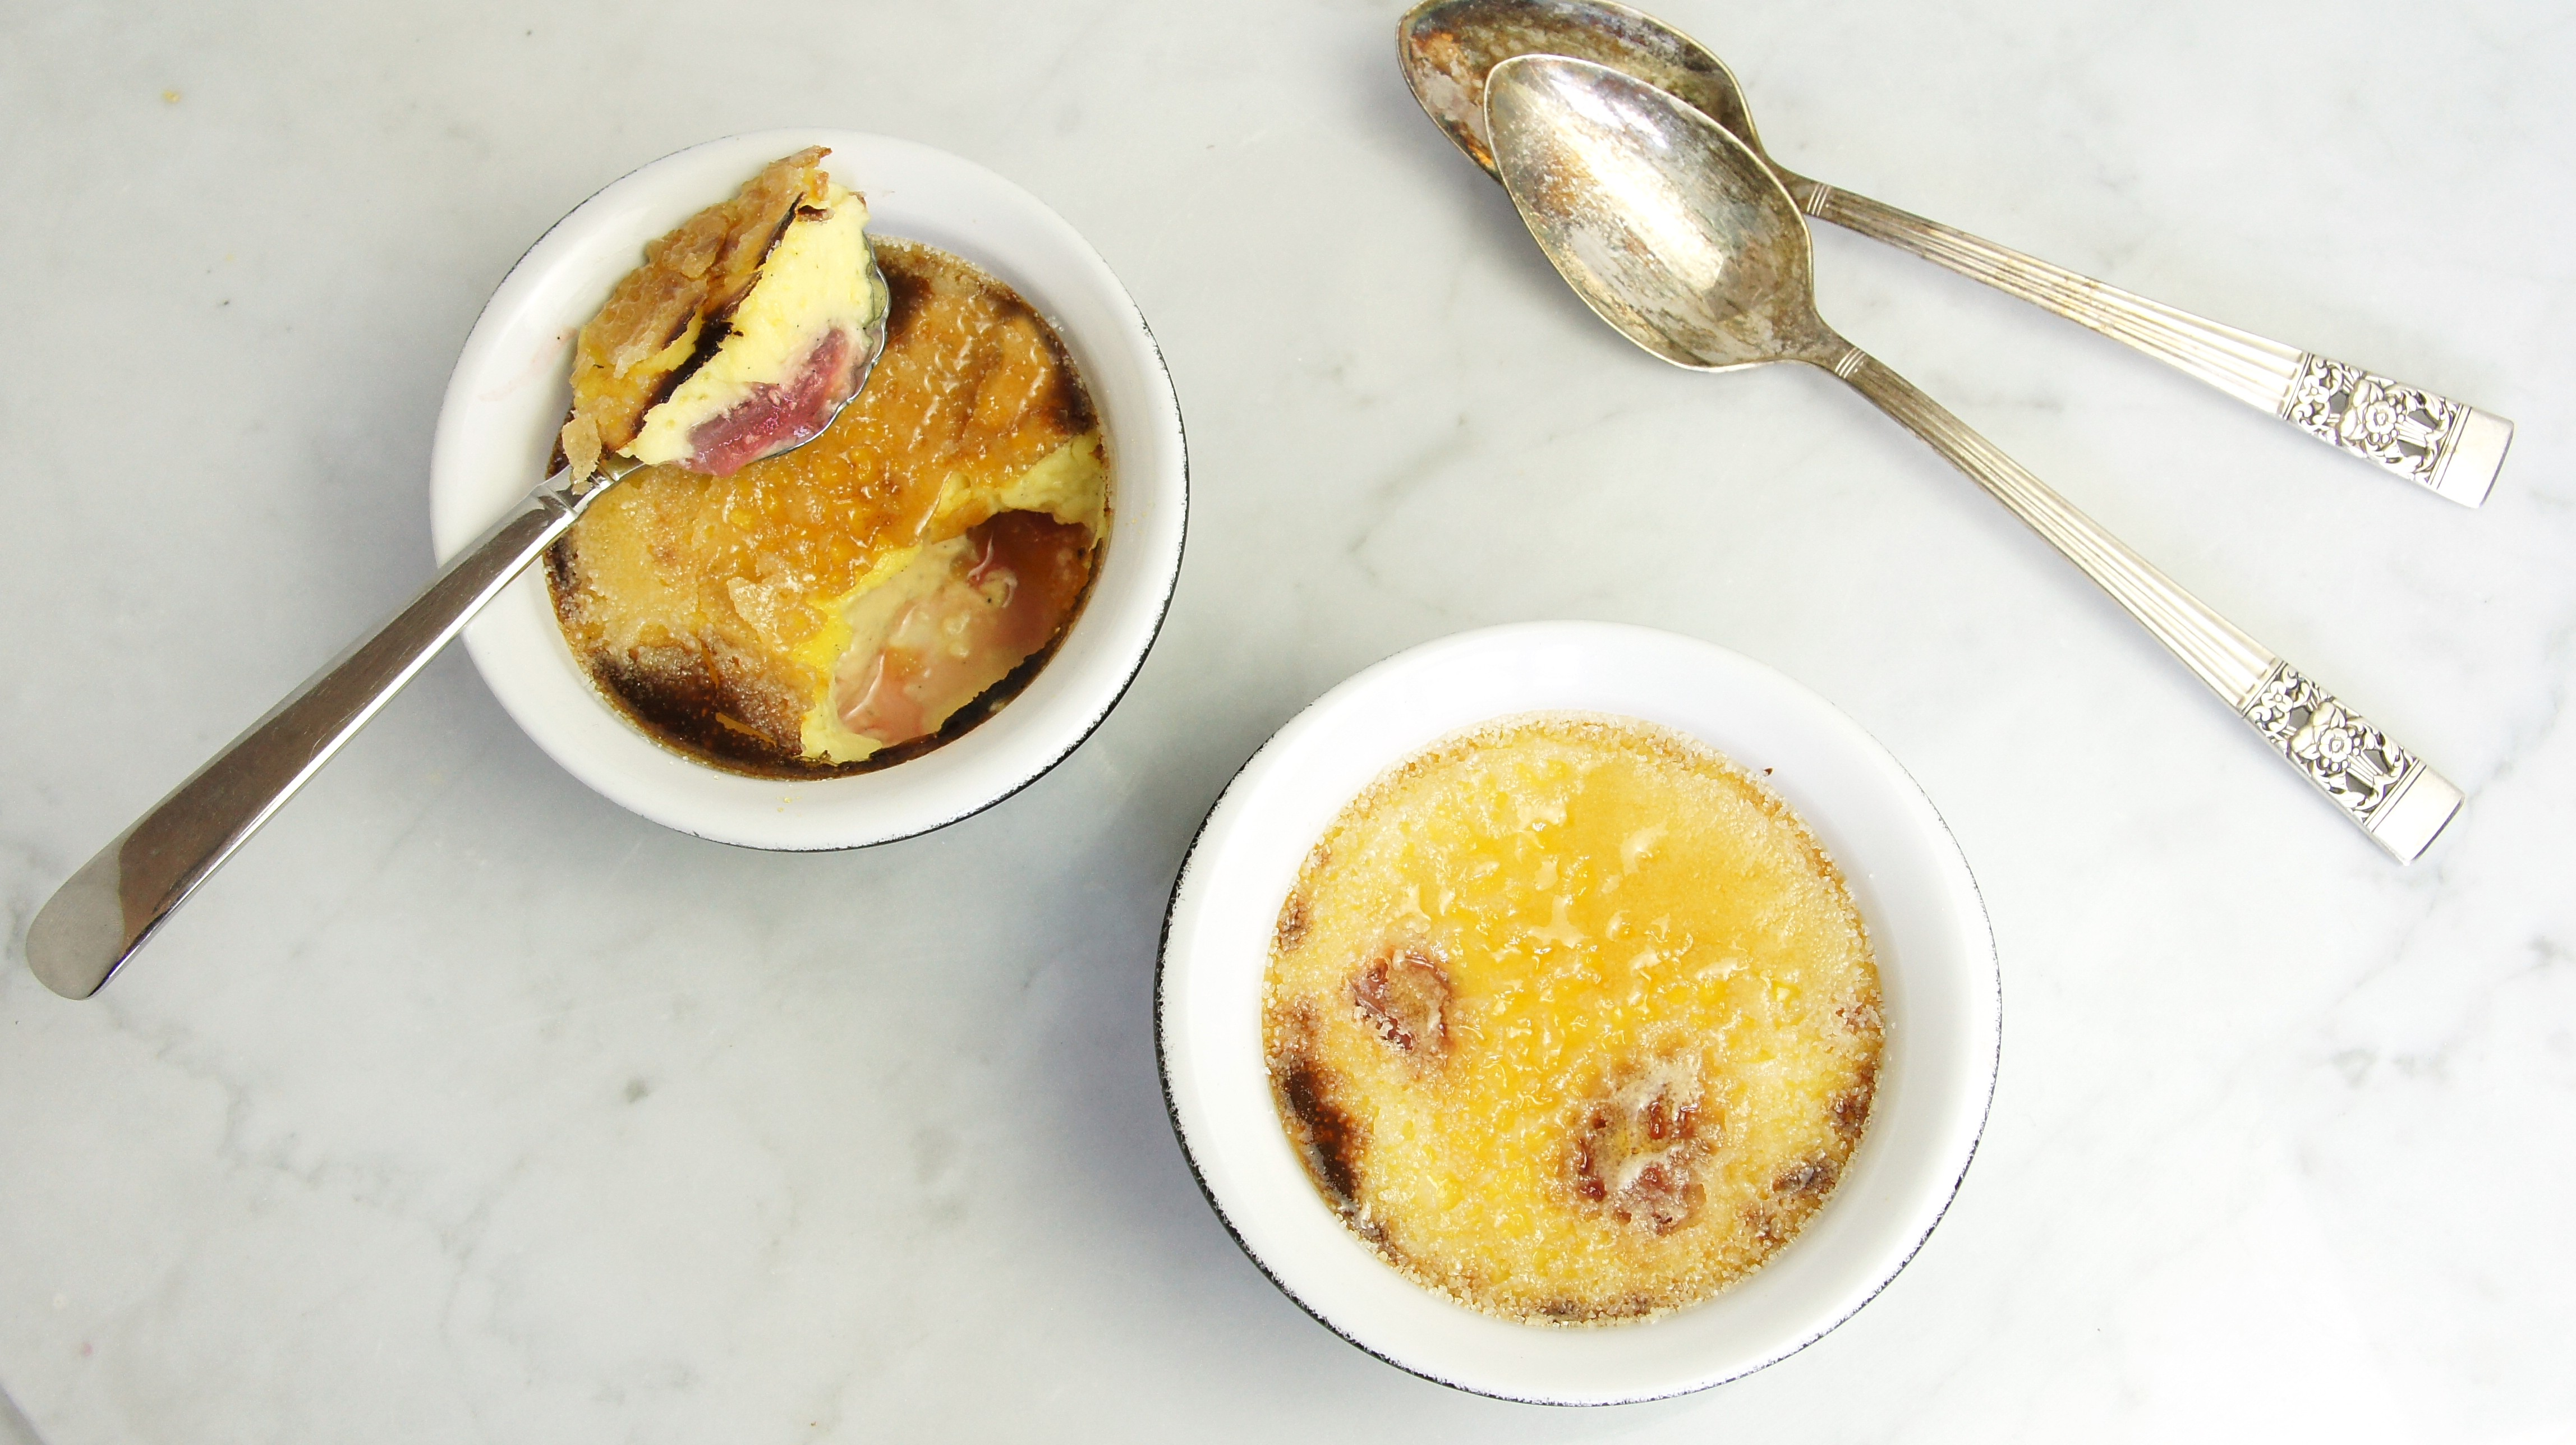 Dessert recipes from scratch with pictures